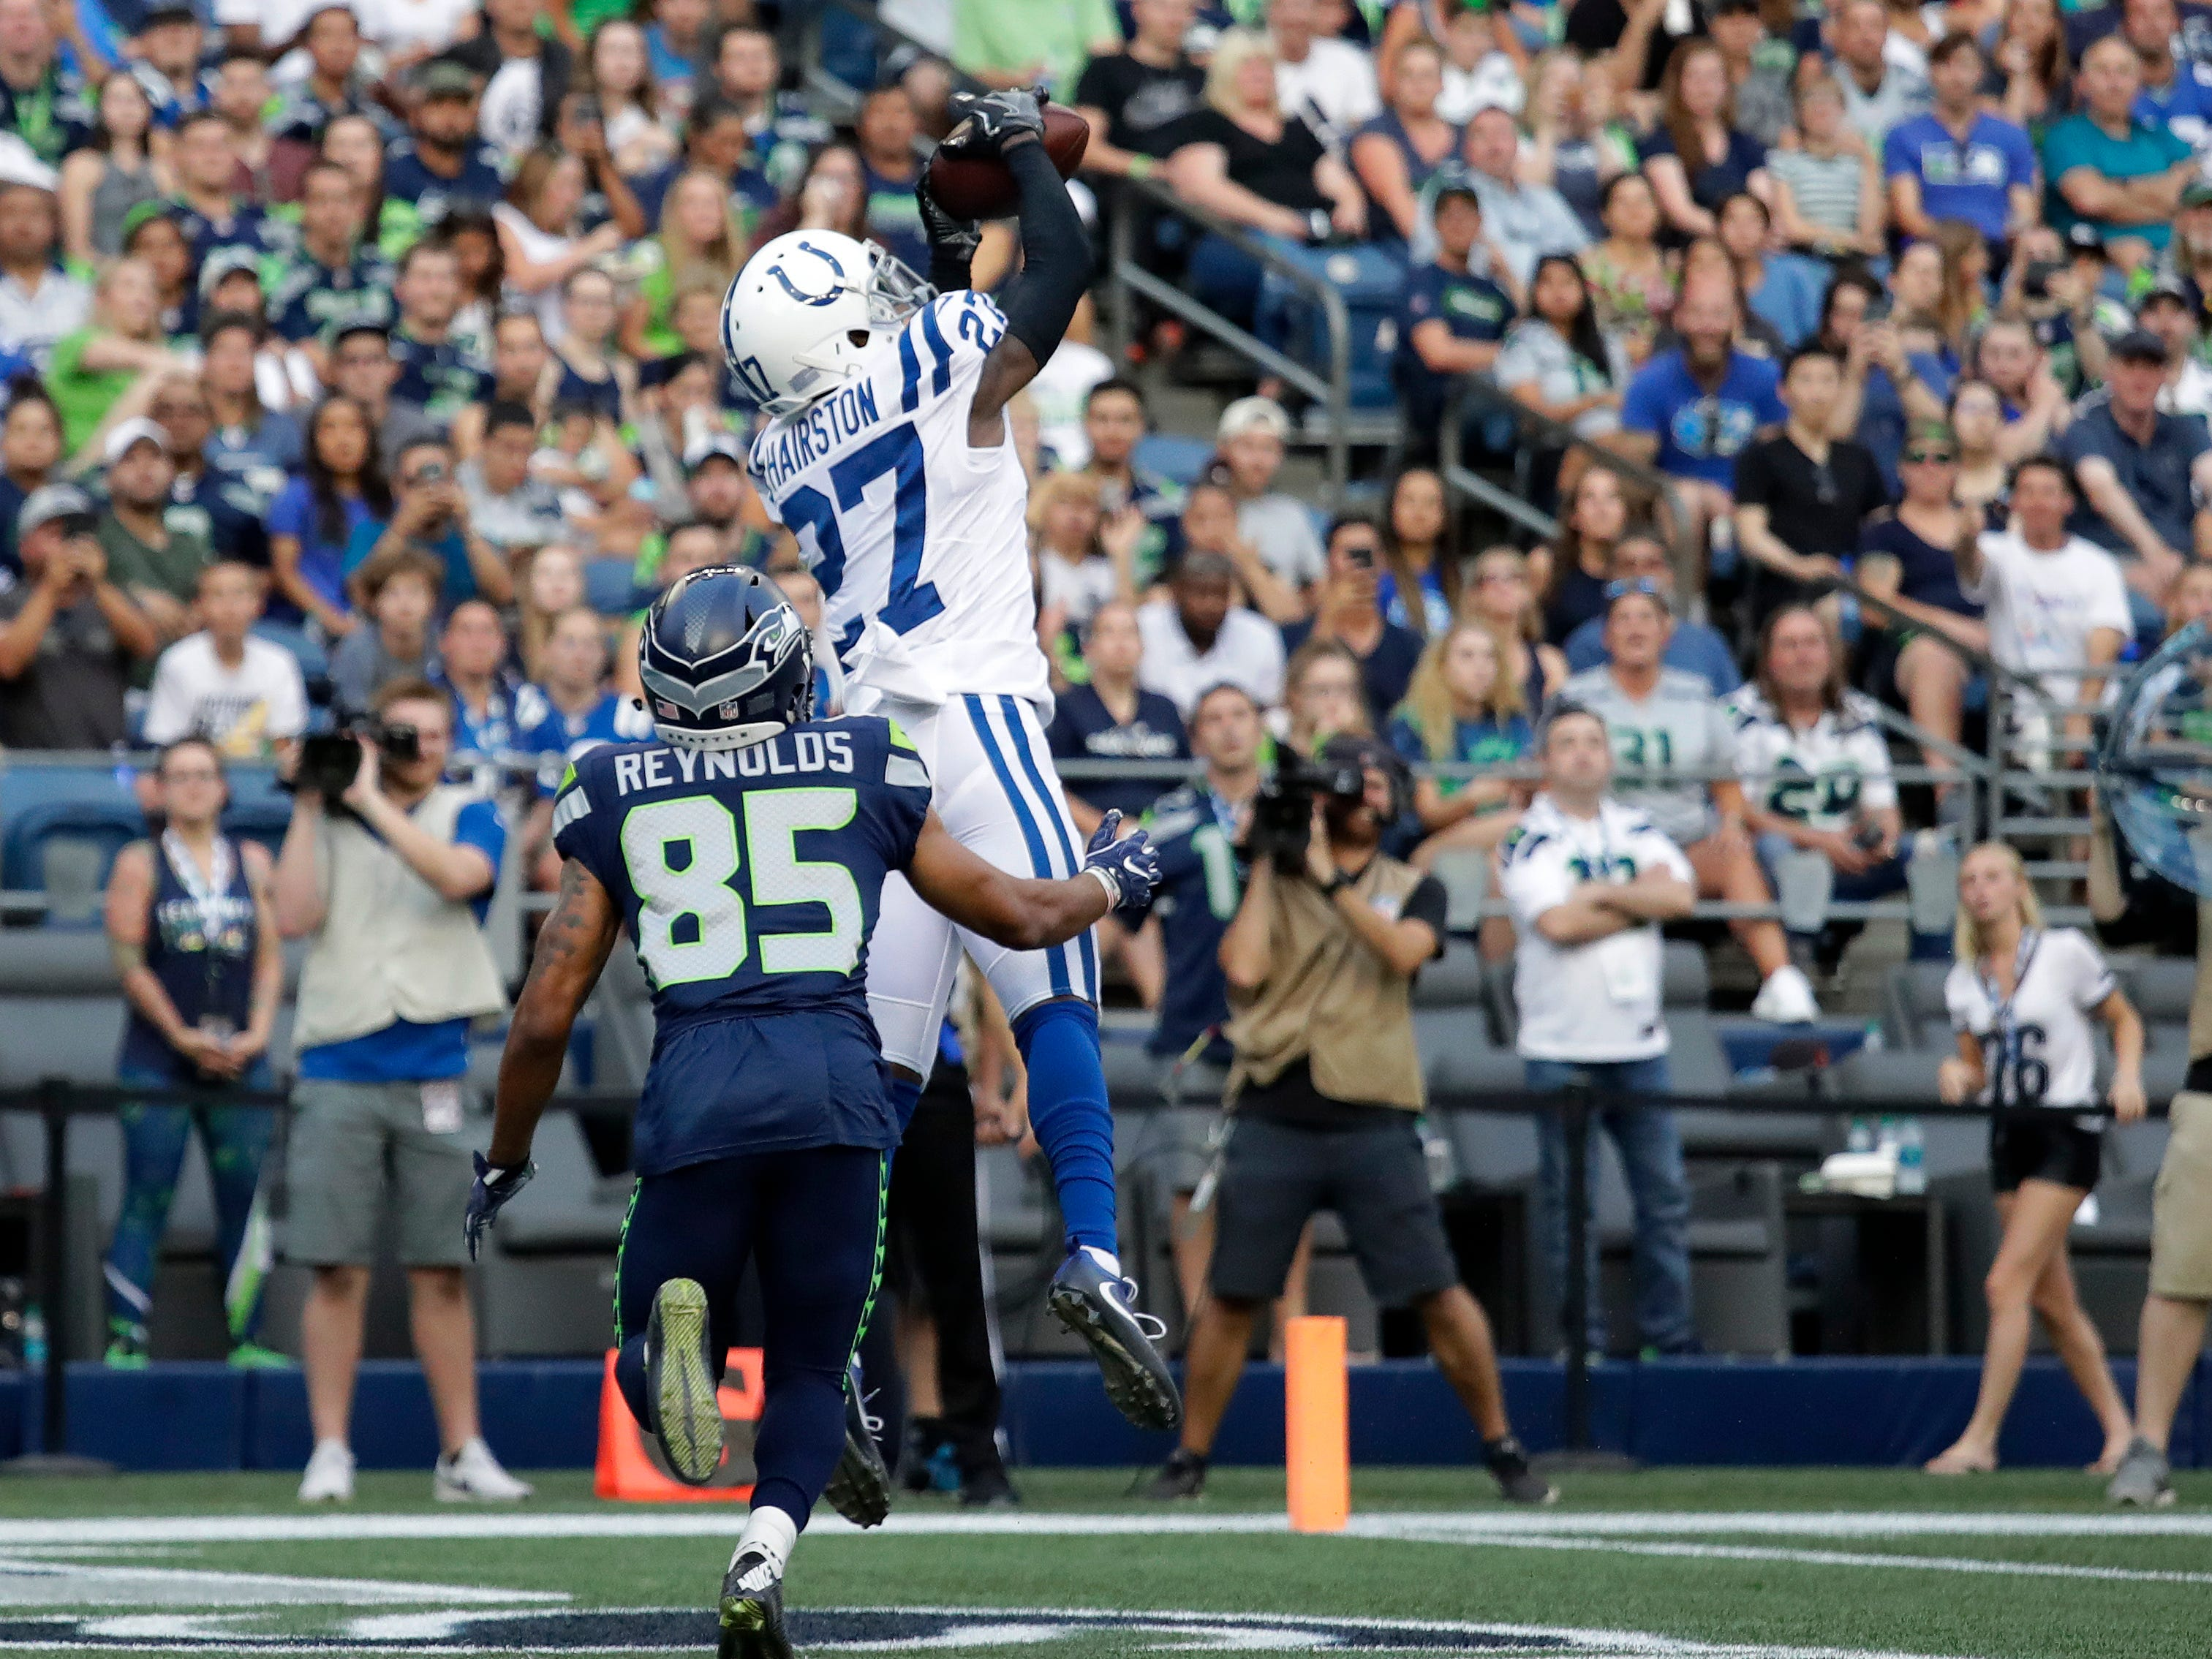 Indianapolis Colts cornerback Nate Hairston (27) intercepts a pass intended for Seattle Seahawks wide receiver Keenan Reynolds (85) during the first half of an NFL football preseason game, Thursday, Aug. 9, 2018, in Seattle. (AP Photo/Elaine Thompson)